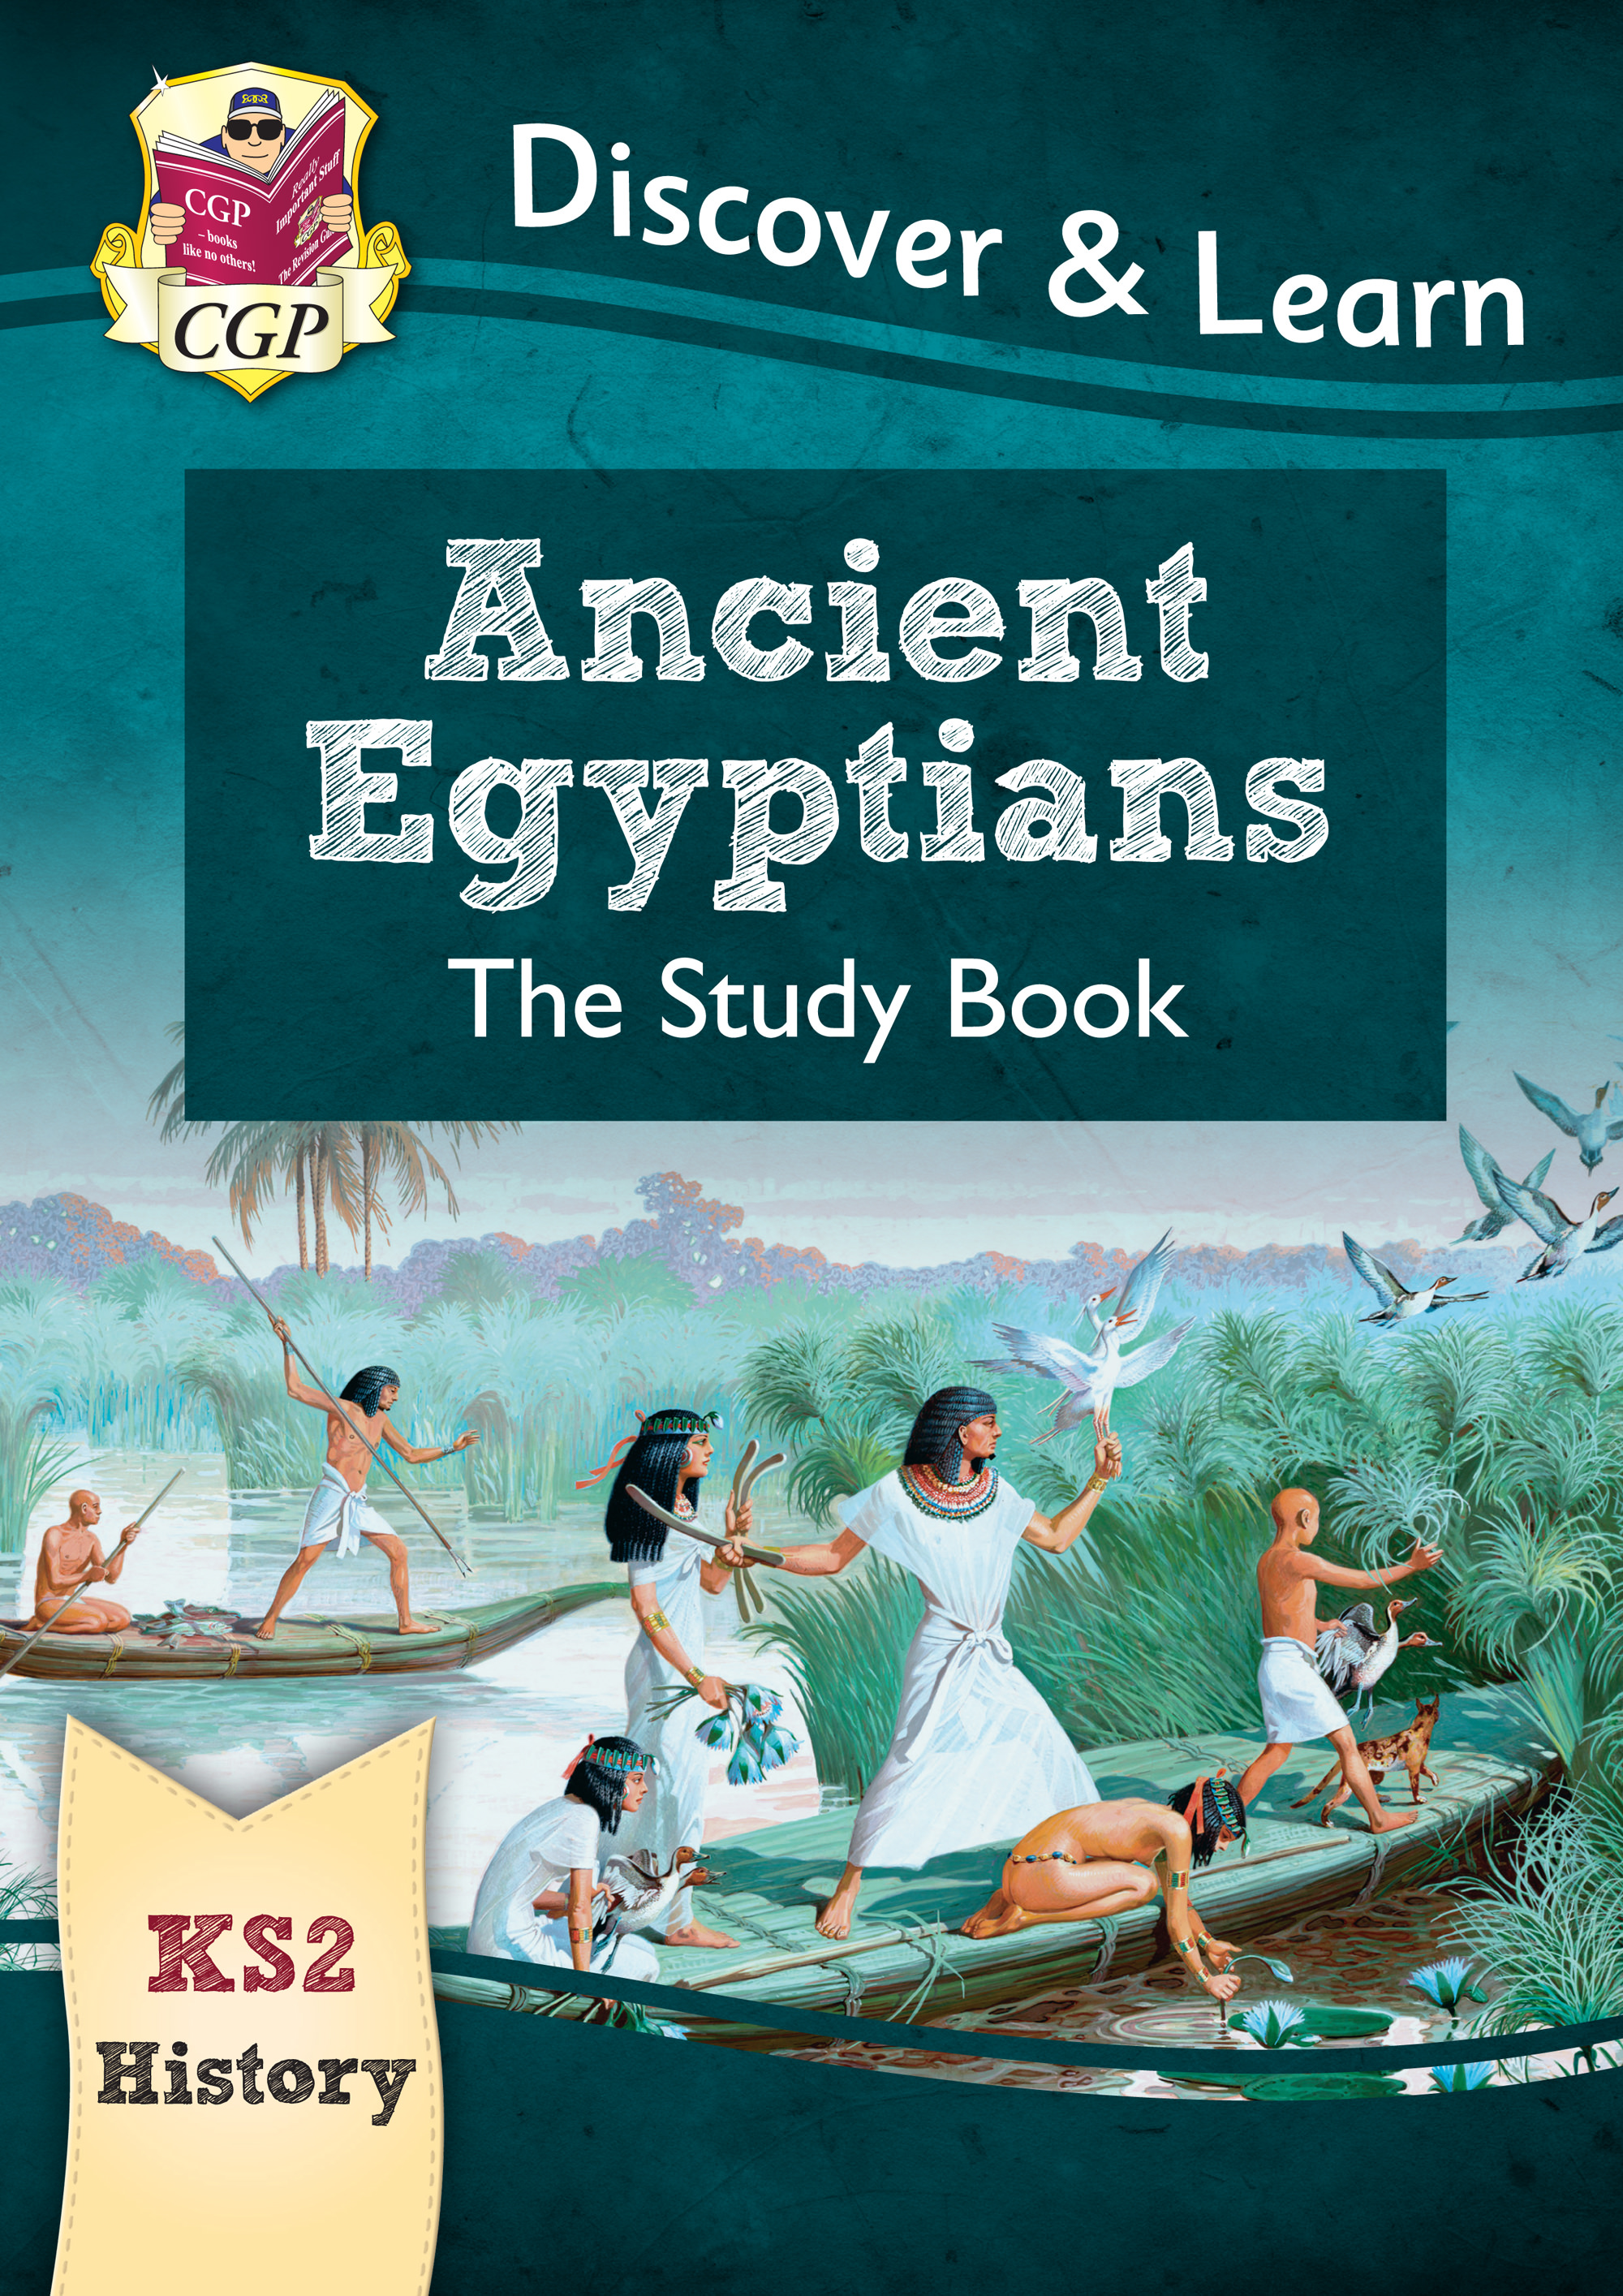 HER21 - New KS2 Discover & Learn: History - Ancient Egyptians Study Book